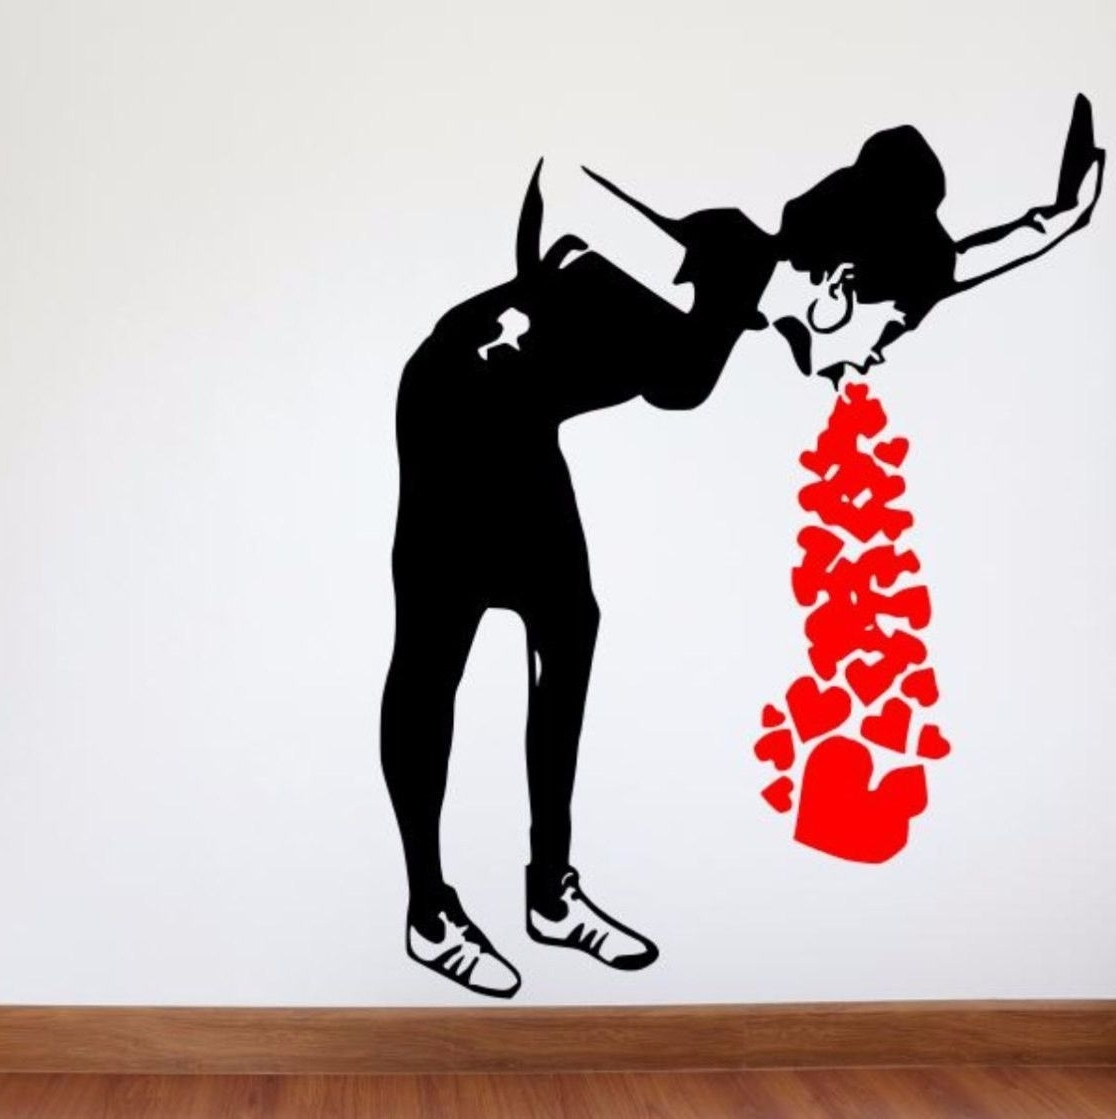 Street Wall Art Decals Inside Famous Street Art Wall Decal, Sick Of Love Removable Wall Decal (View 10 of 15)